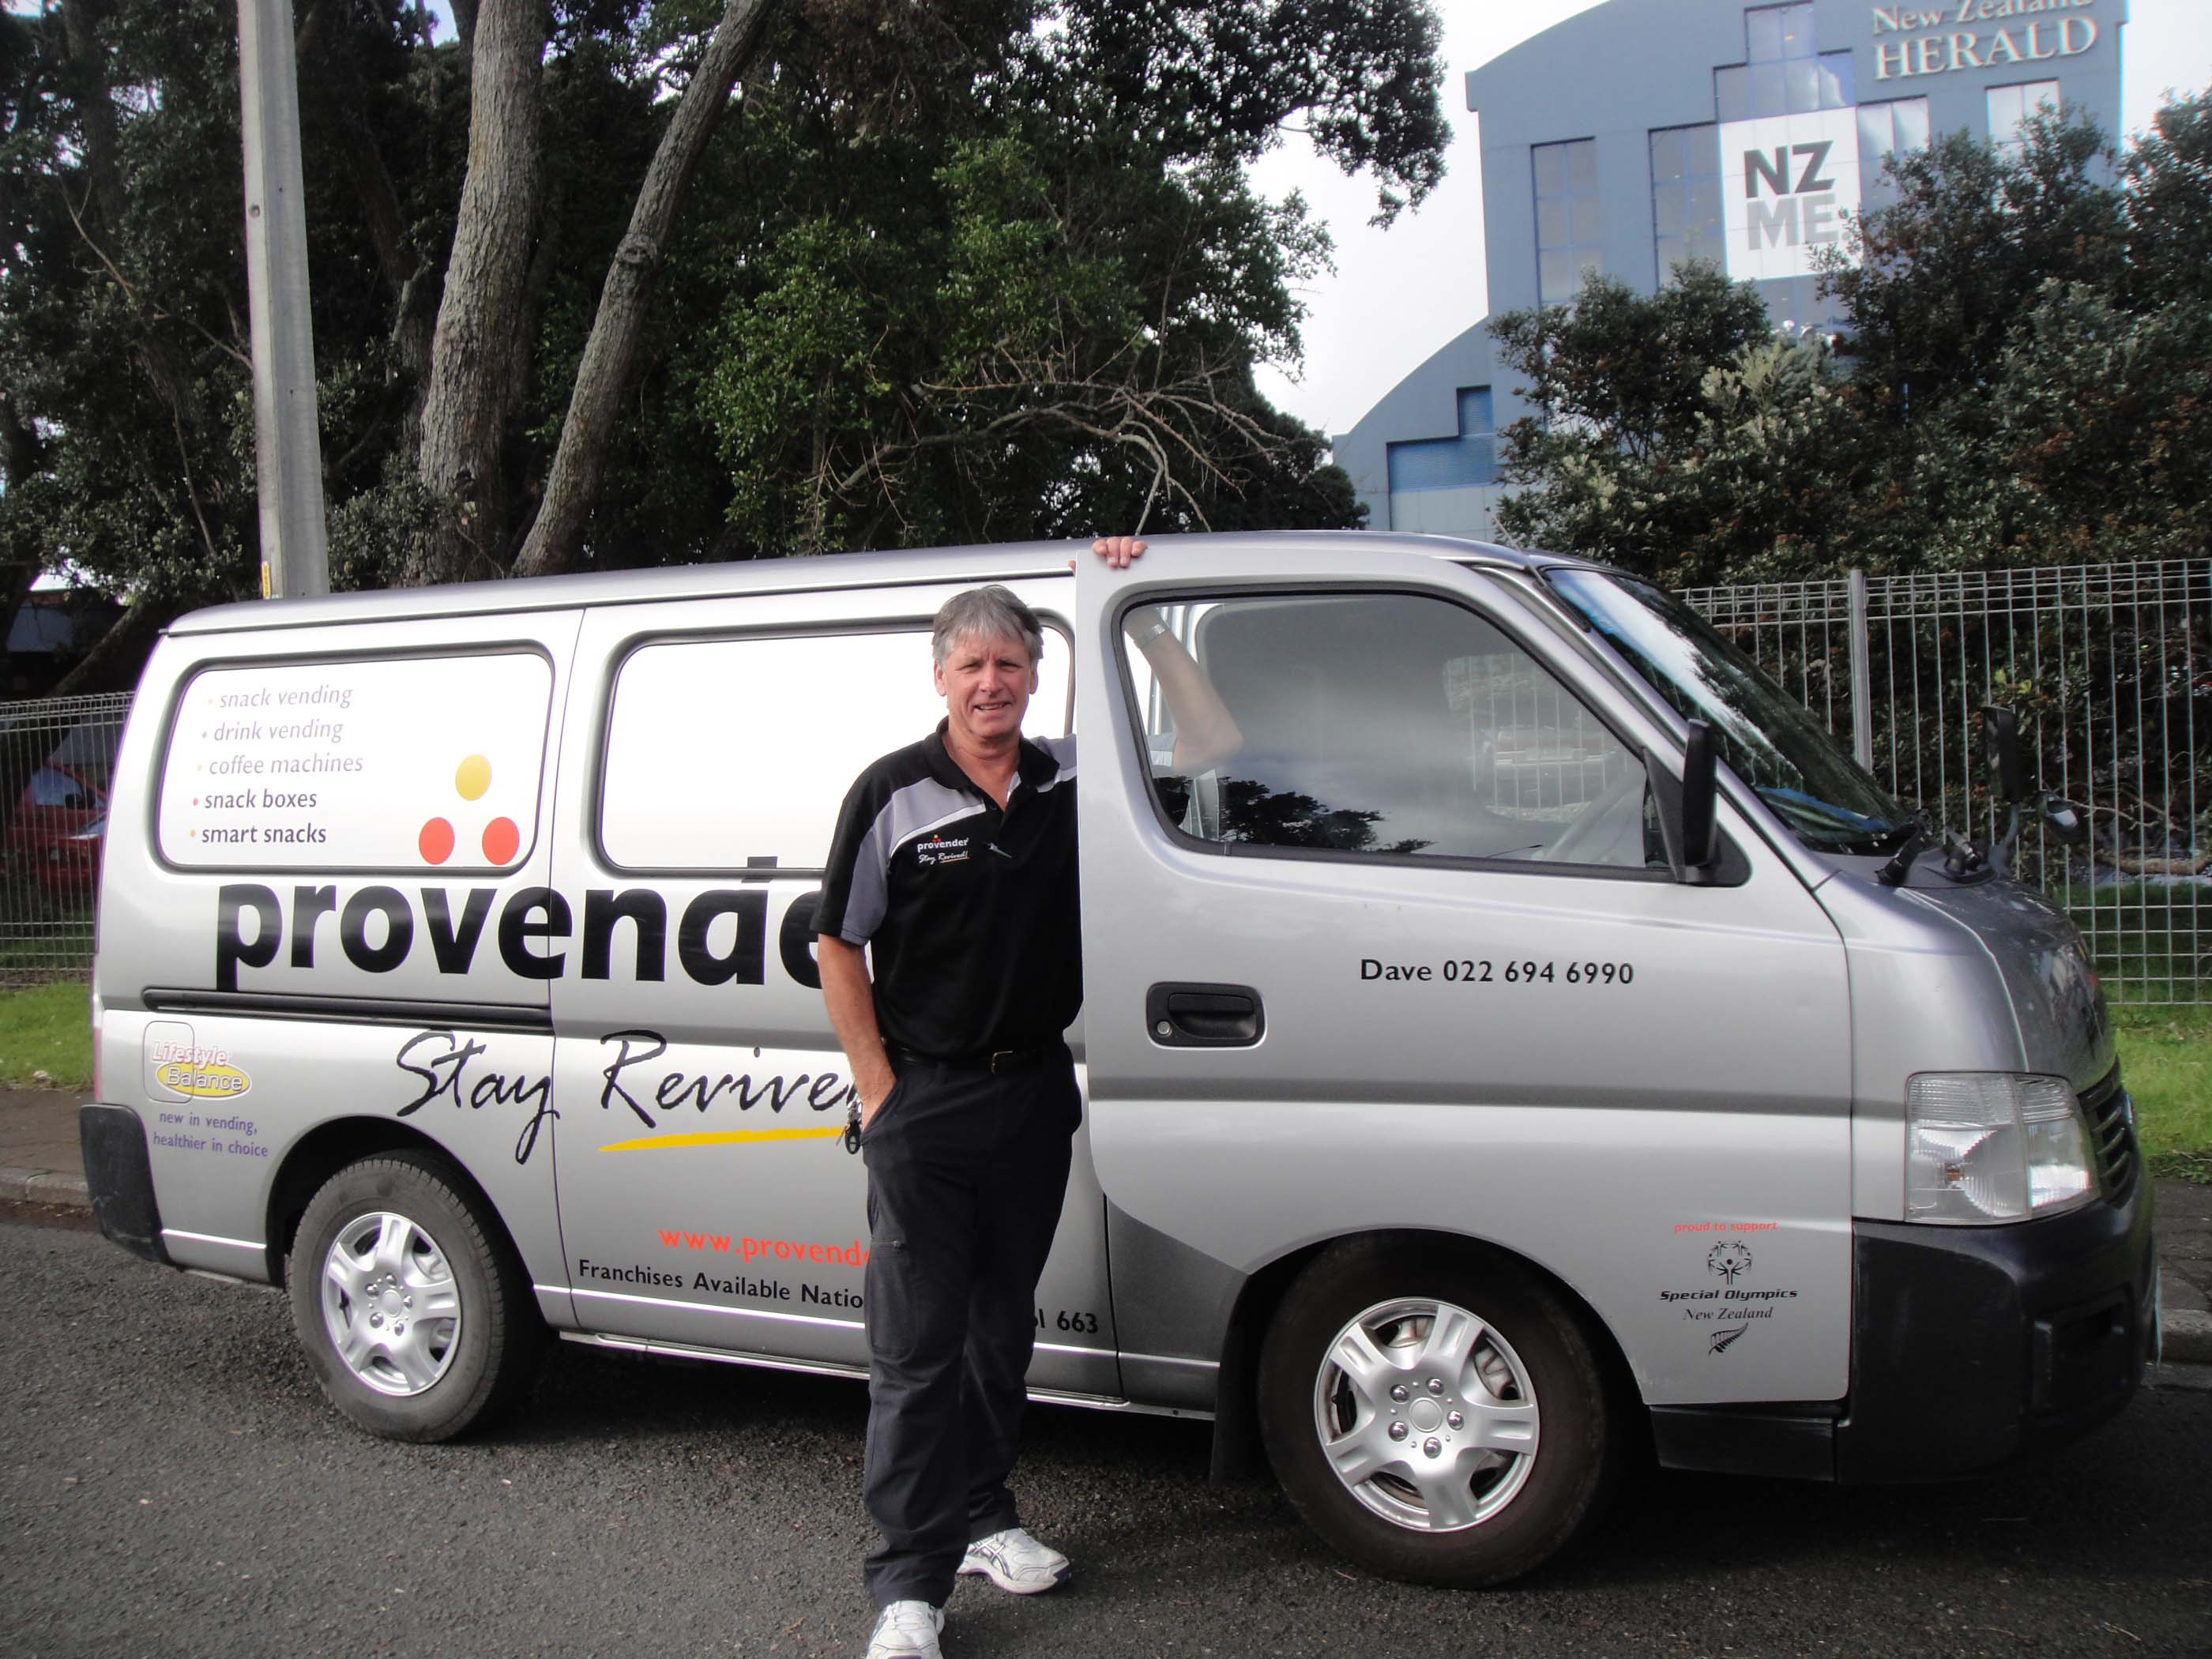 Mobile Refreshment Vending Franchise for Sale Auckland